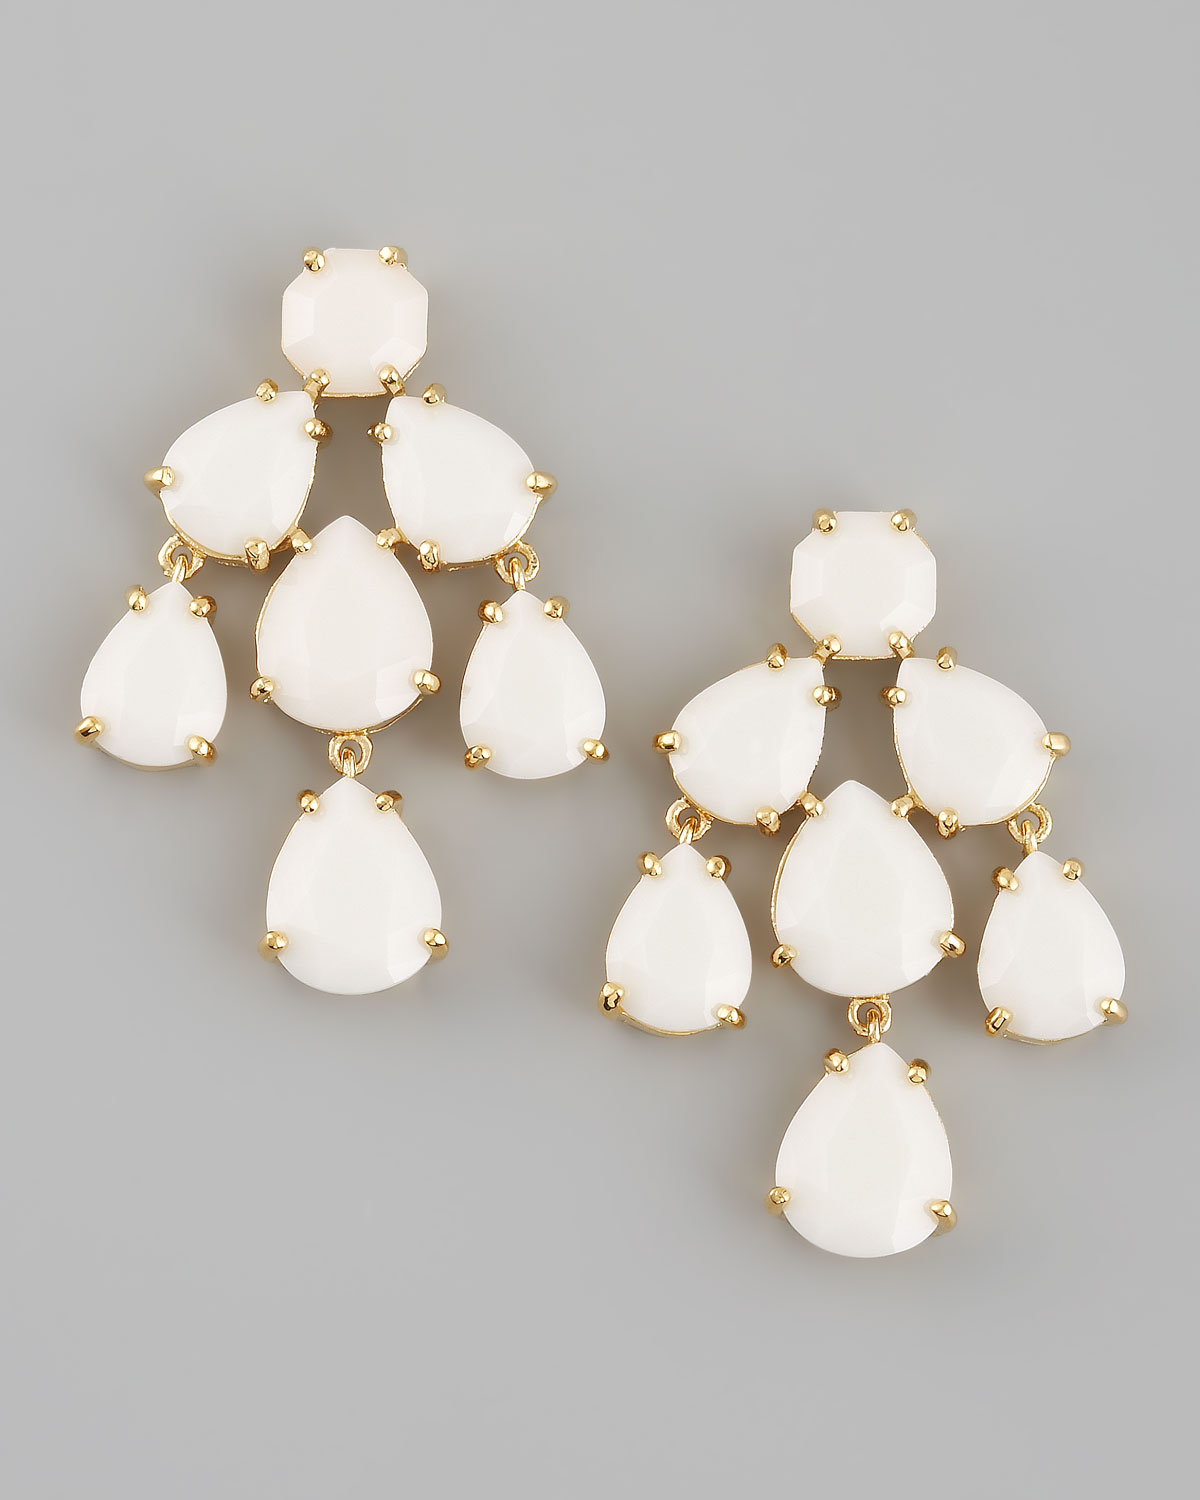 Kate spade new york Chandelier Earrings in White | Lyst